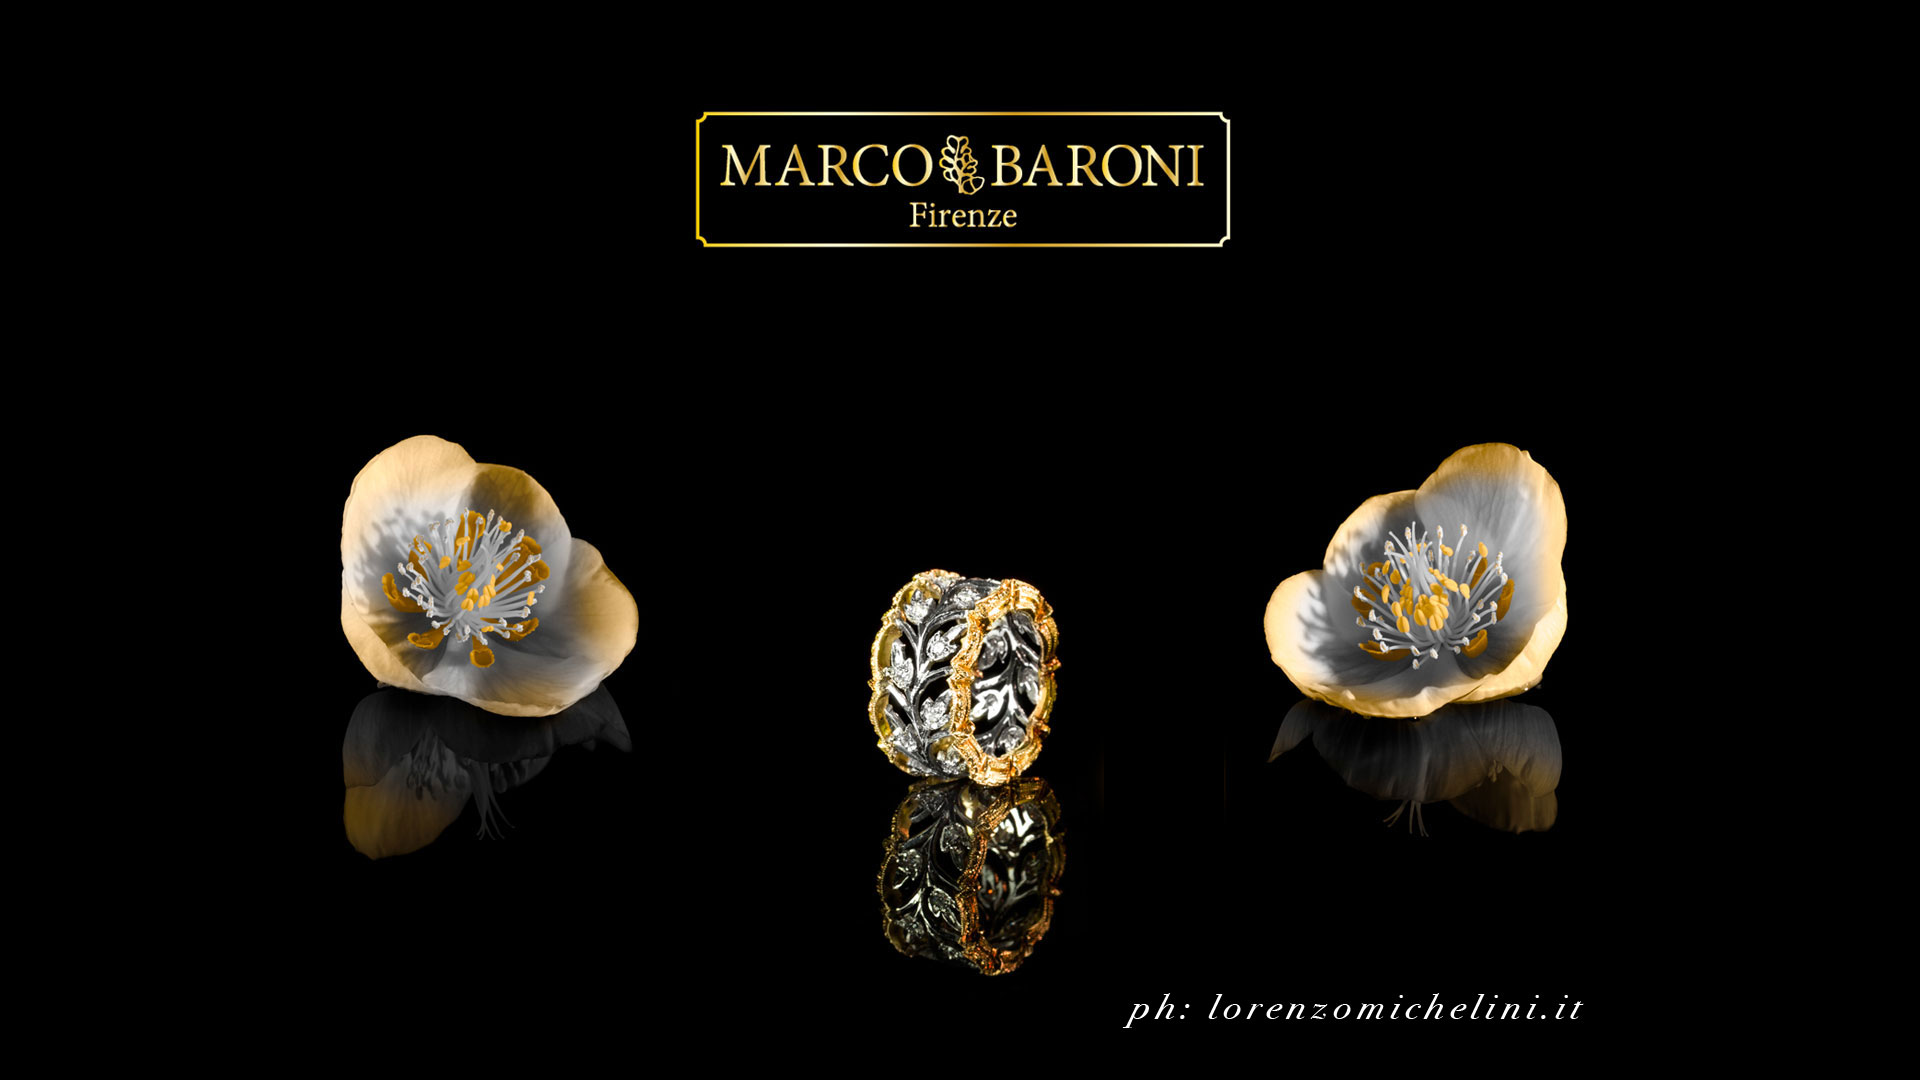 Lorenzo-Michelini-Fotografo-Firenze-still-life-adverising-jewellery-design-luxury-Marco-Baroni-Selection-Jewellery-Pitti-Immagine-gioielli